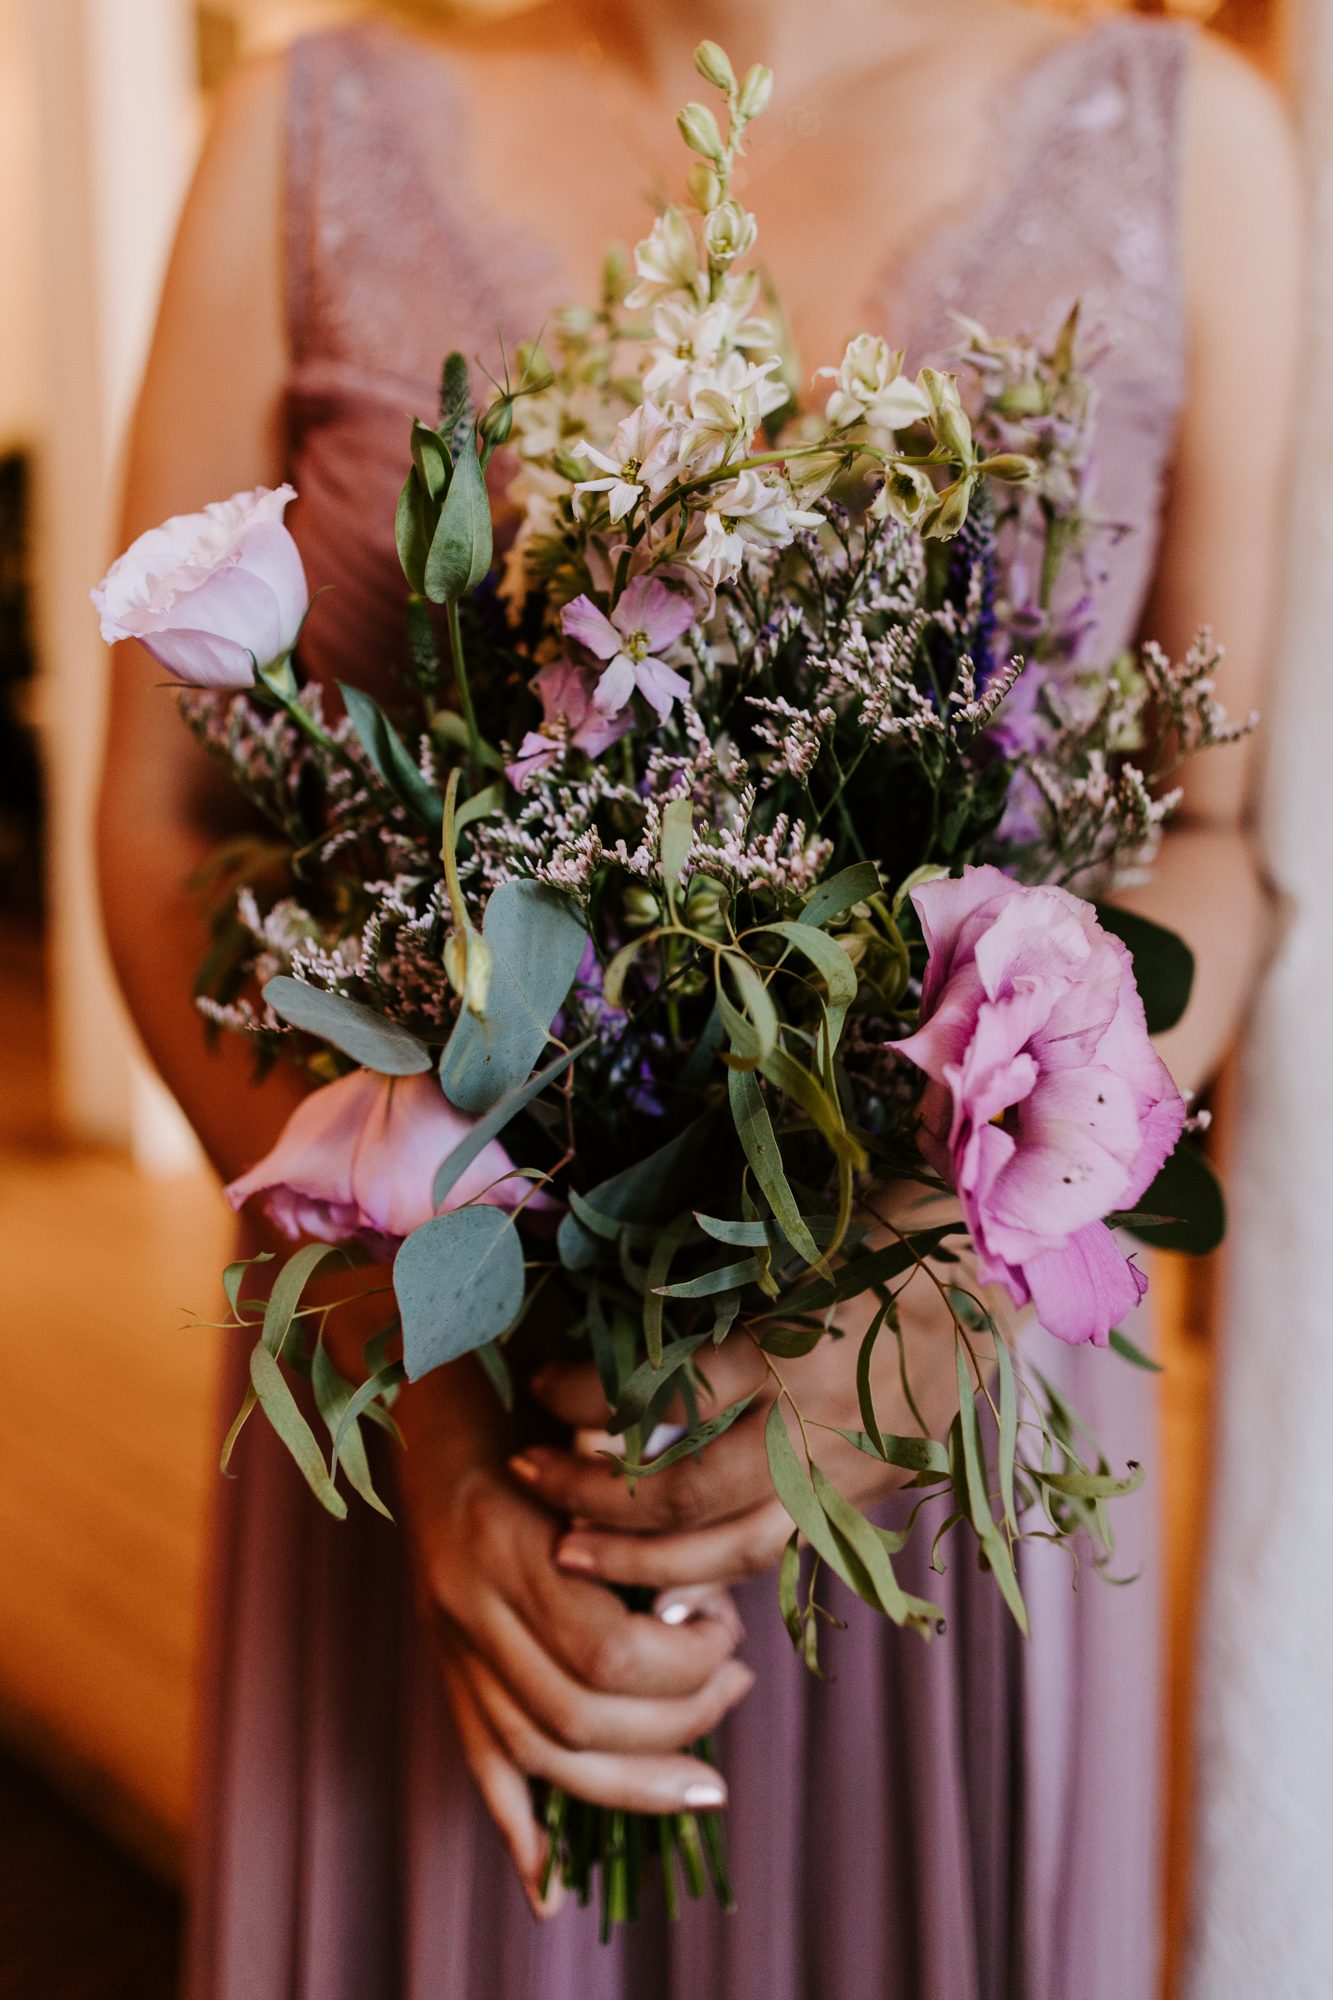 Wildflower bouquet | Carondelet House Wedding in Downtown Los Angeles | Los Angeles Wedding Photographer |Tida Svy Photography | www.tidasvy.com